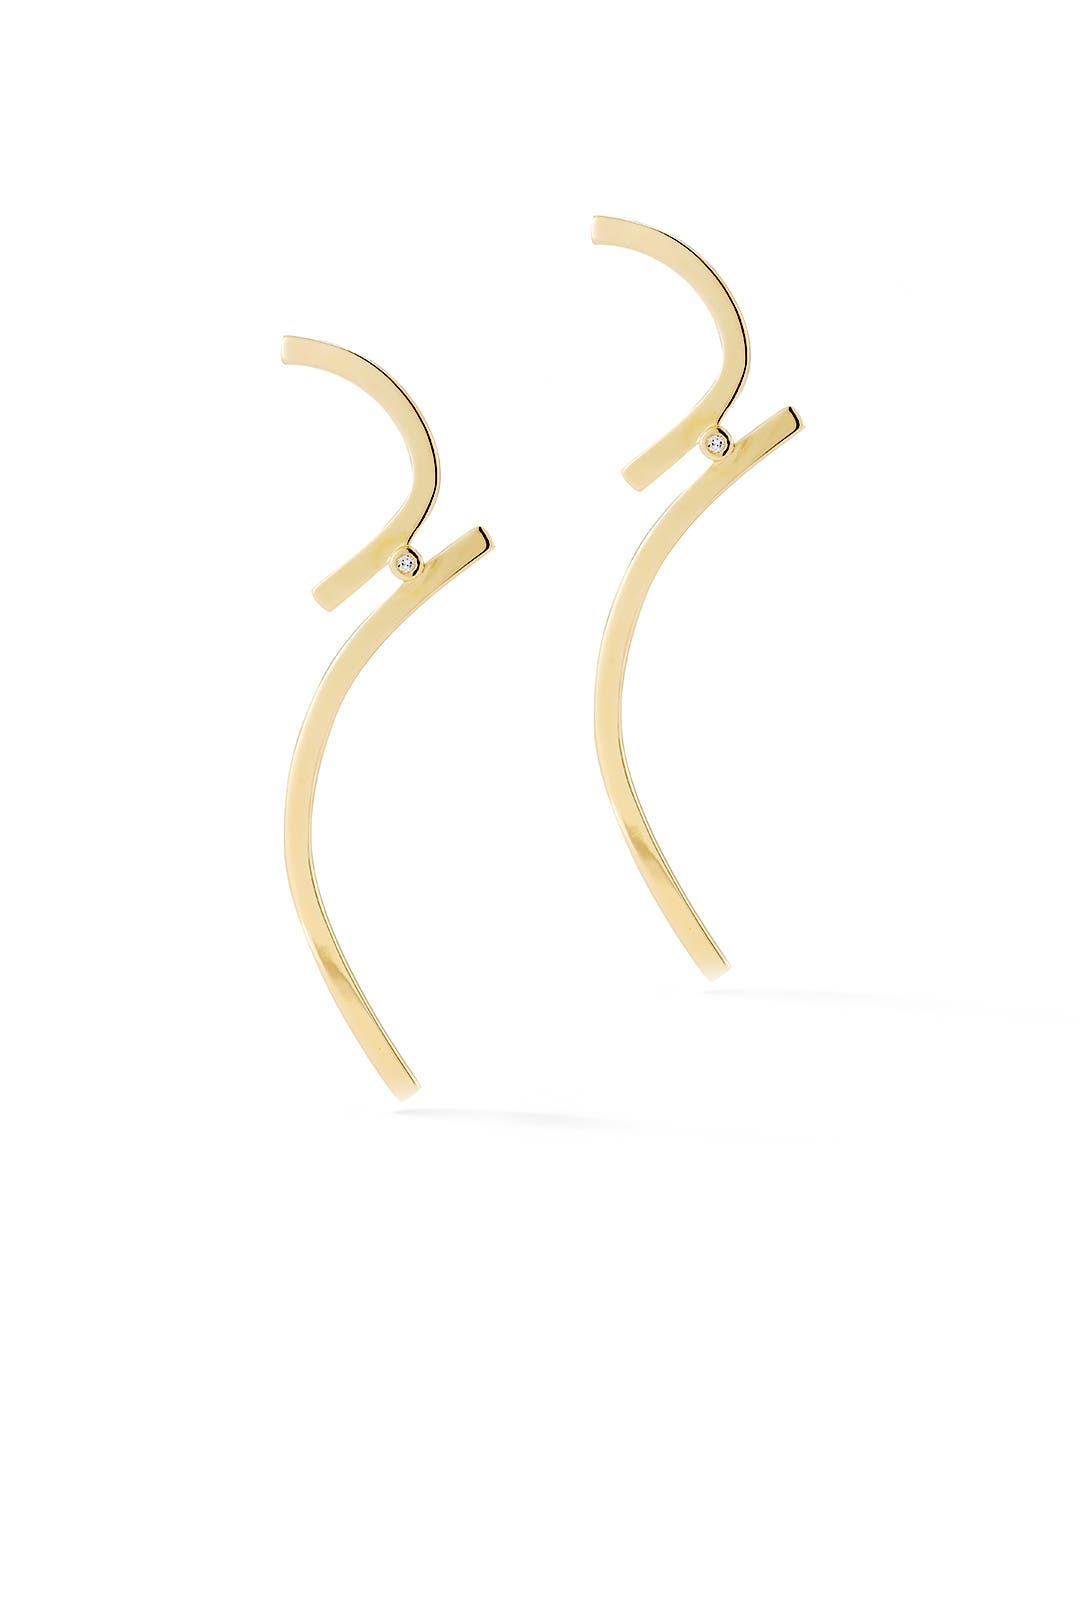 Gold Amber Earrings By Elizabeth And James Accessories For $20  Rent The  Runway